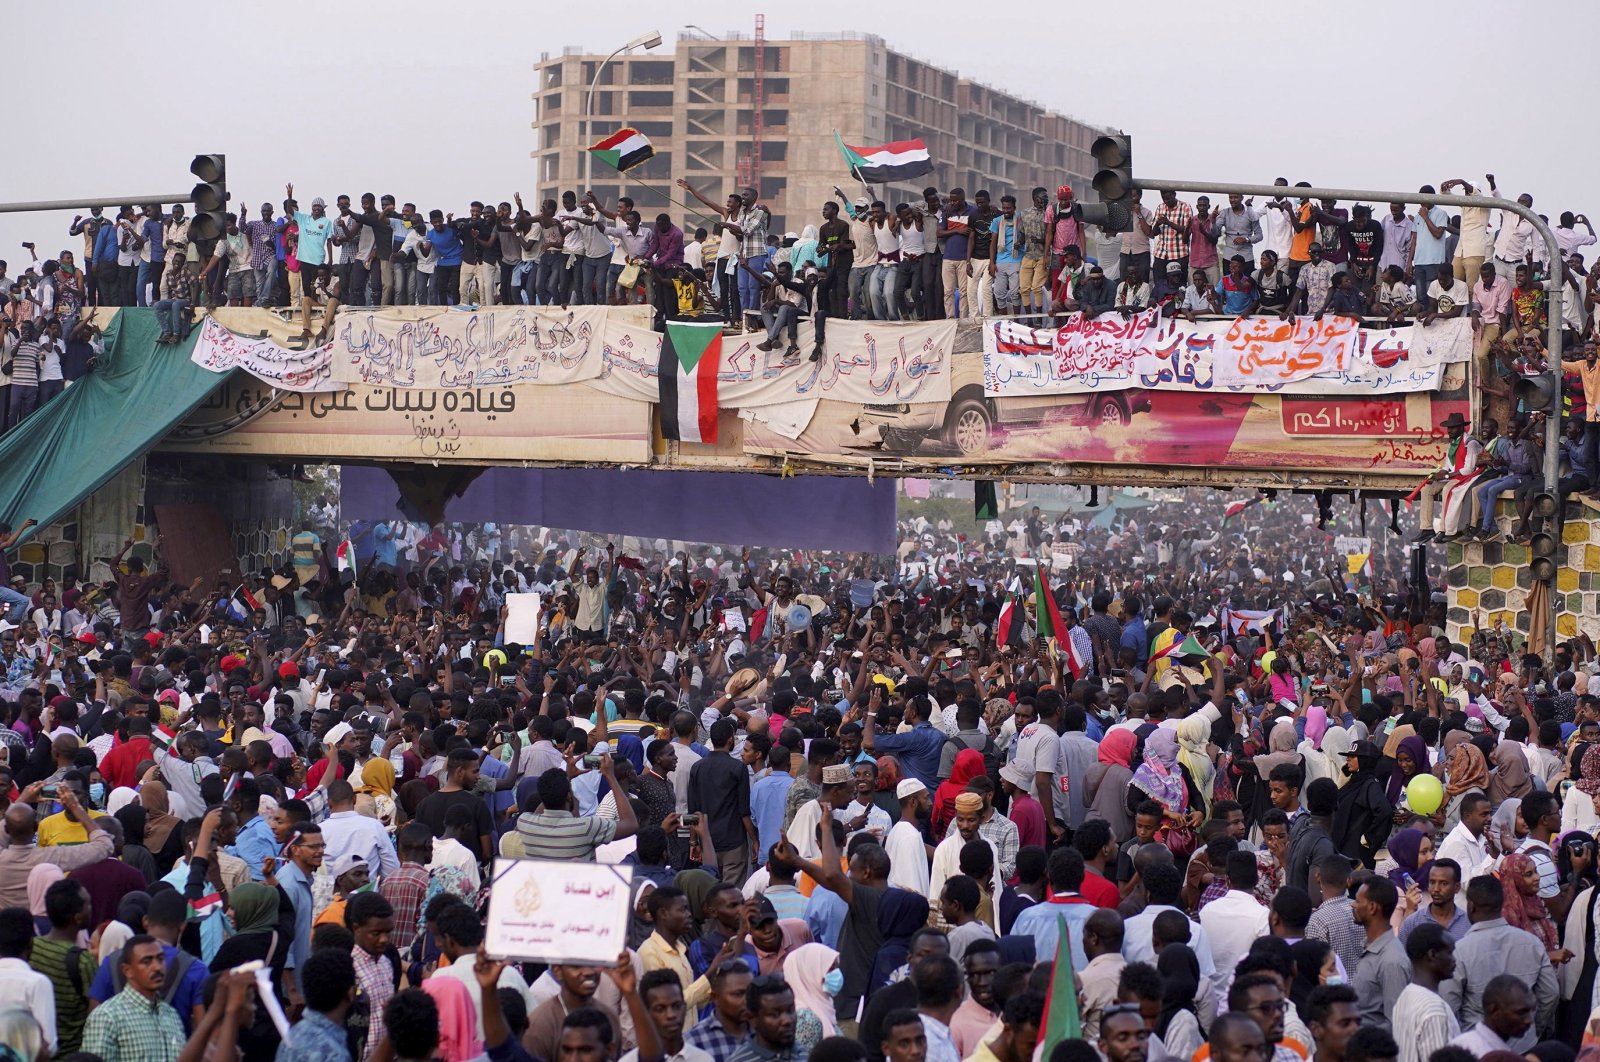 Demonstrators attend a protest rally demanding the resignation of President Omar al-Bashir, Khartoum, Sudan, April 10, 2019. (REUTERS Photo)